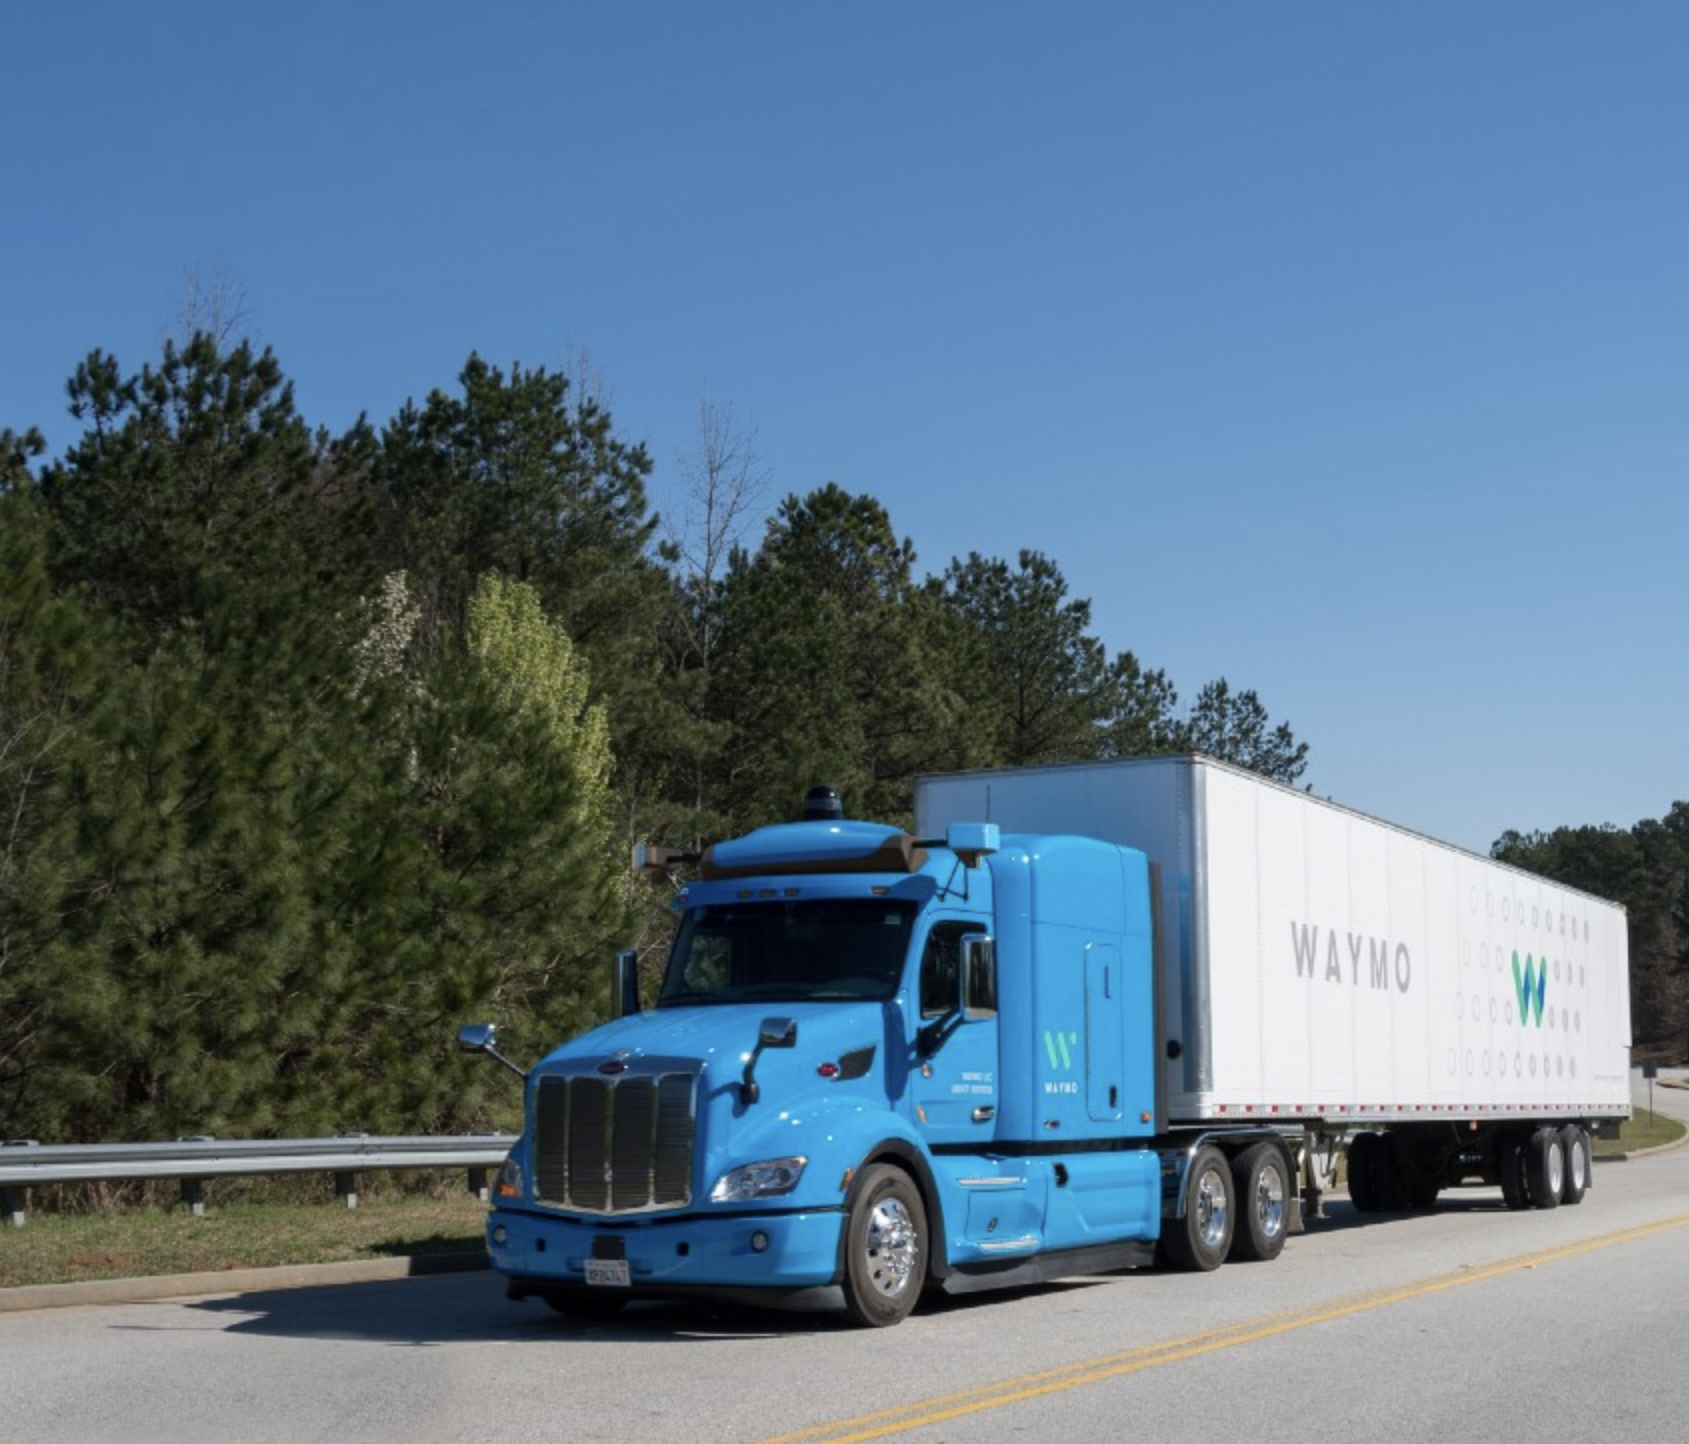 Waymo, the name of Google's self driving vehicle company, is now testing autonomous trucks in Atlanta.